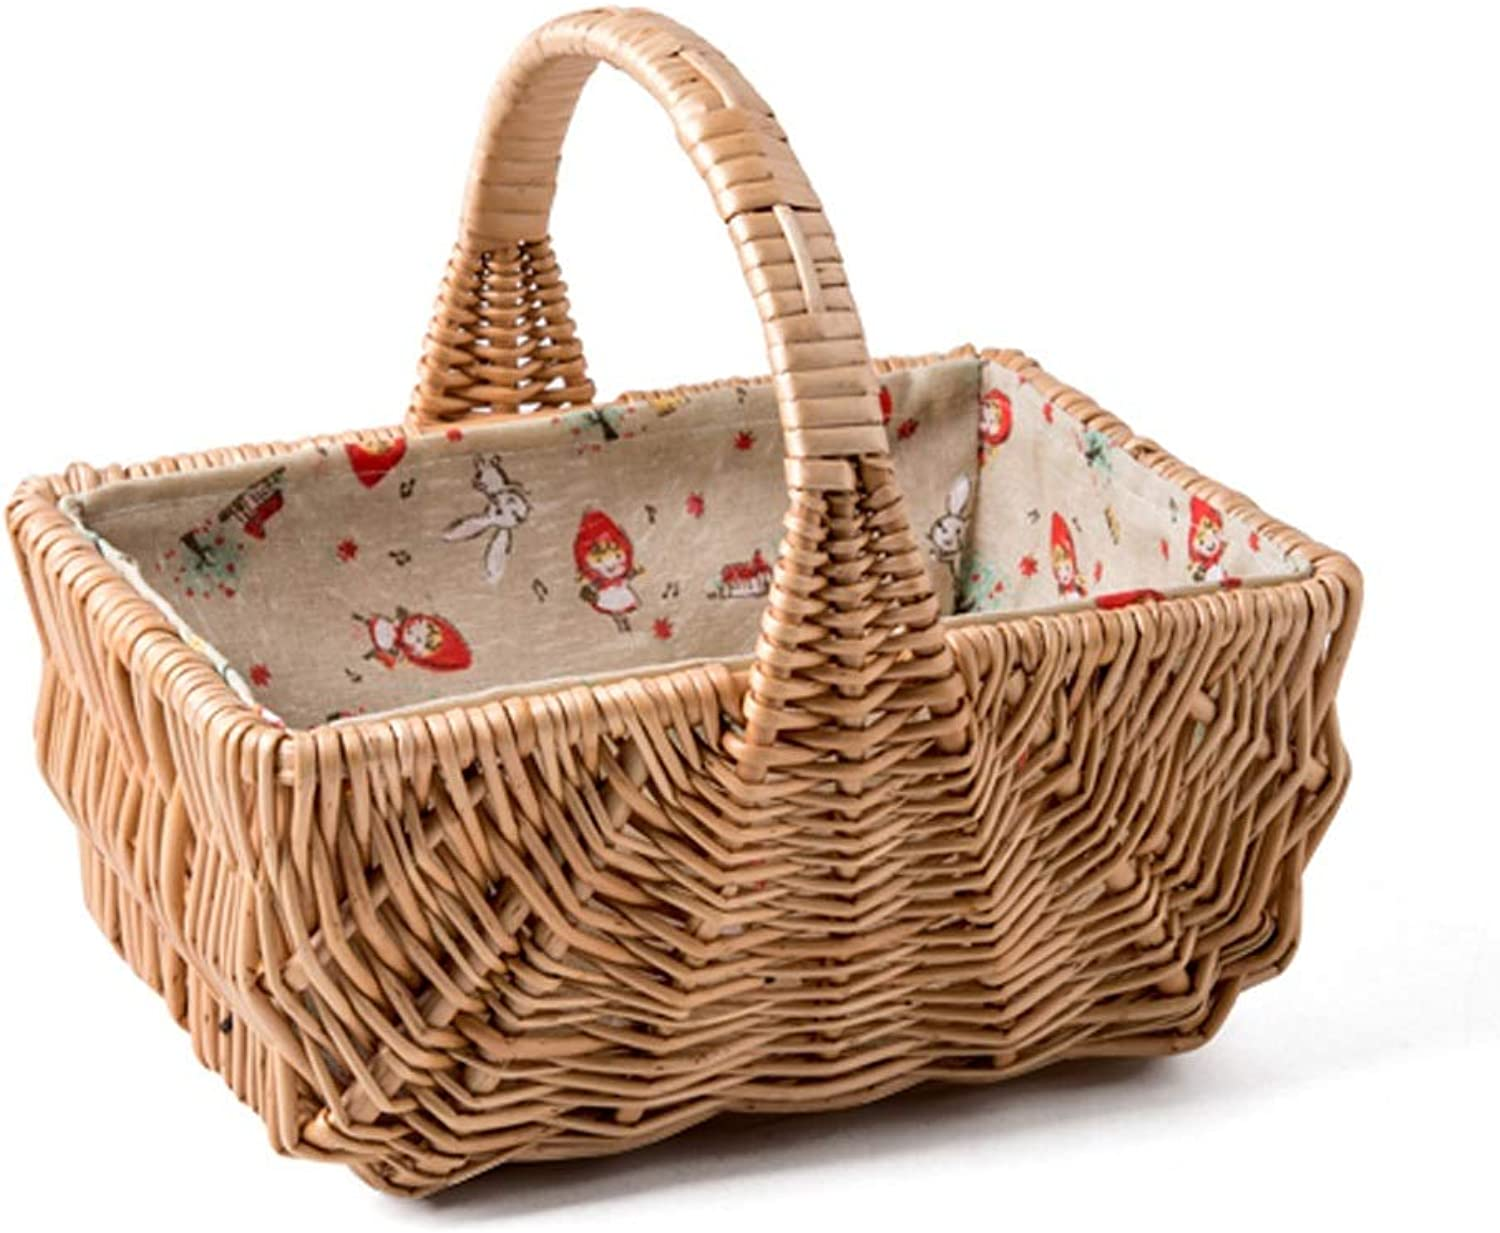 Hai Yan Boutique Picnic Basket  Handmade Rattan Picnic Basket Pastoral Portable Fruit Basket Miscellaneous Storage Basket Cotton Lined Woven Basket (2 Styles) (color   26x20x14cm)